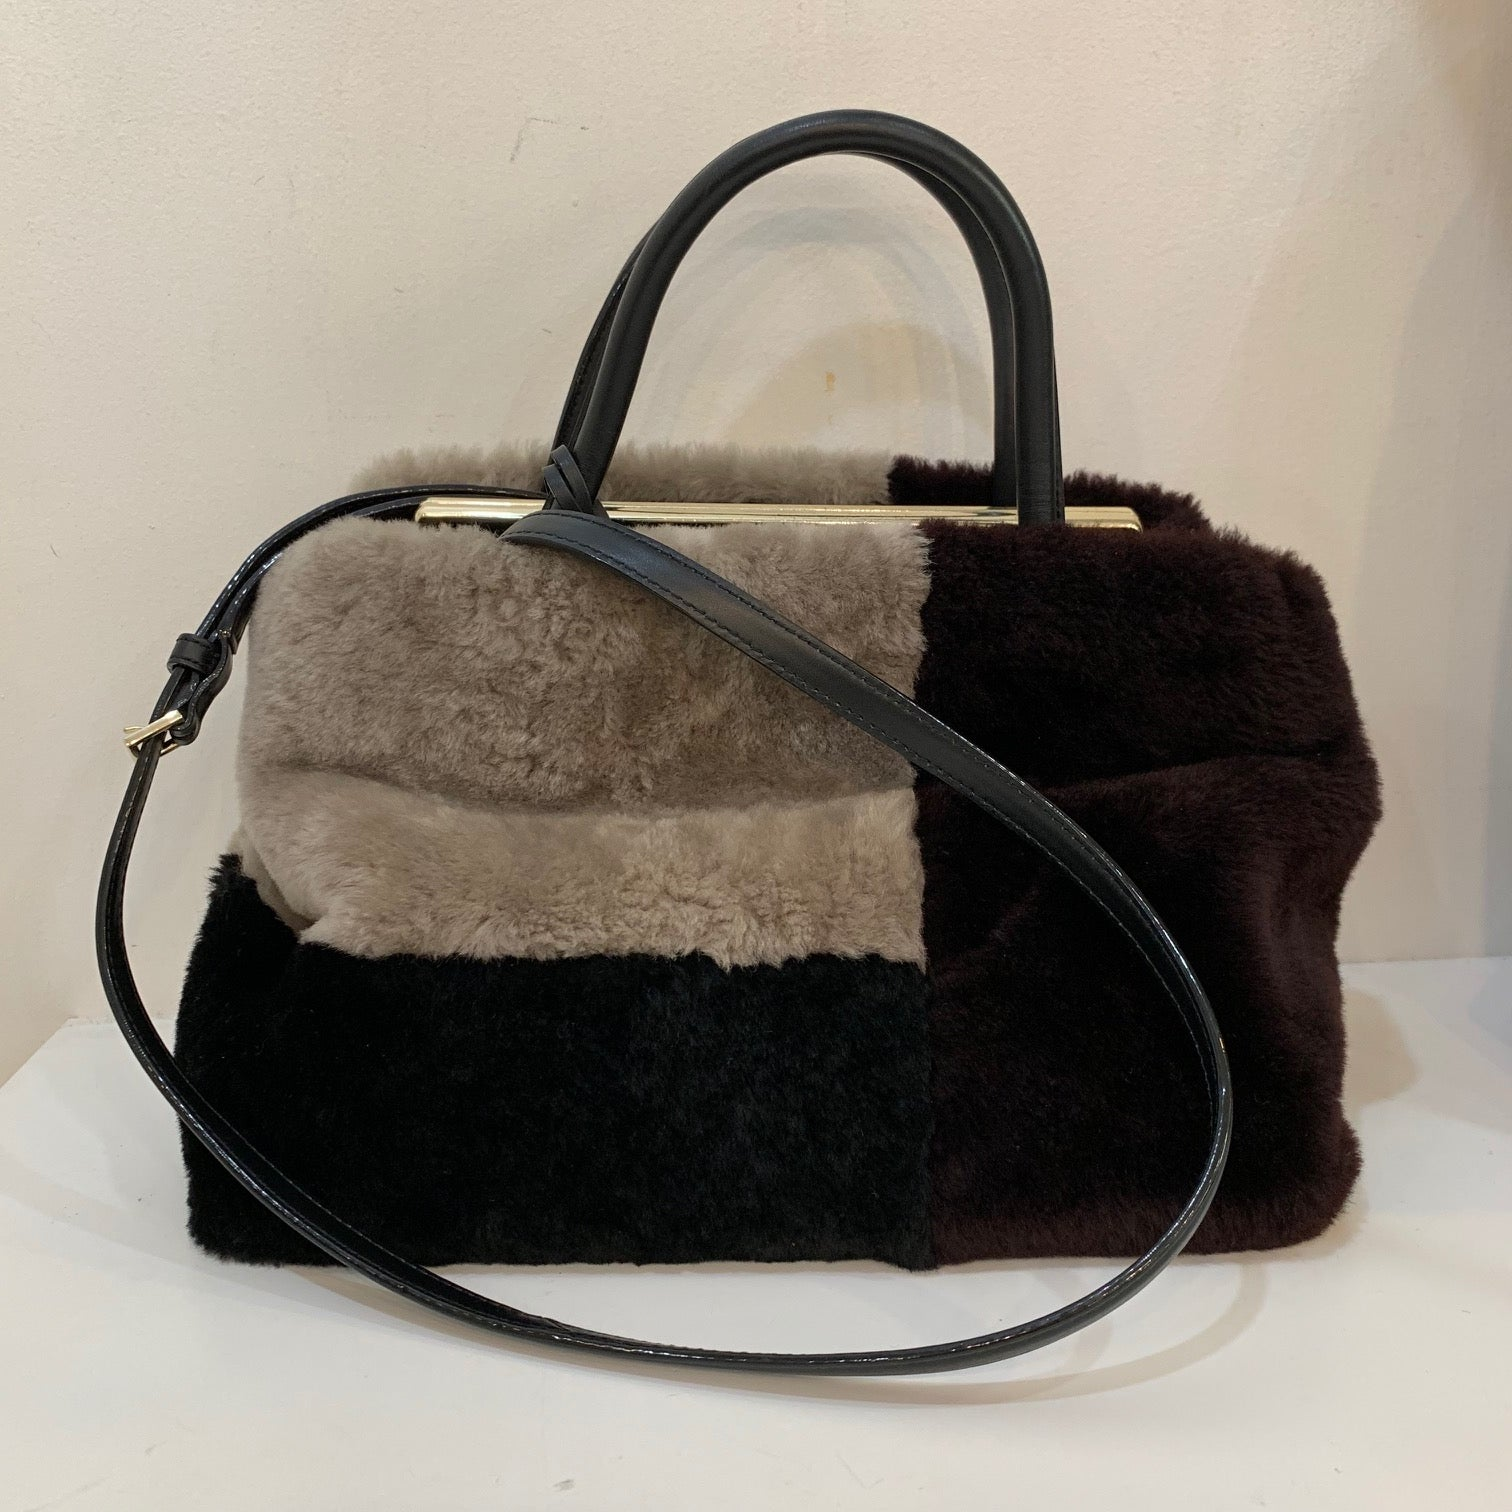 Kate Spade Fur Black/Maroon Shoulder Bag